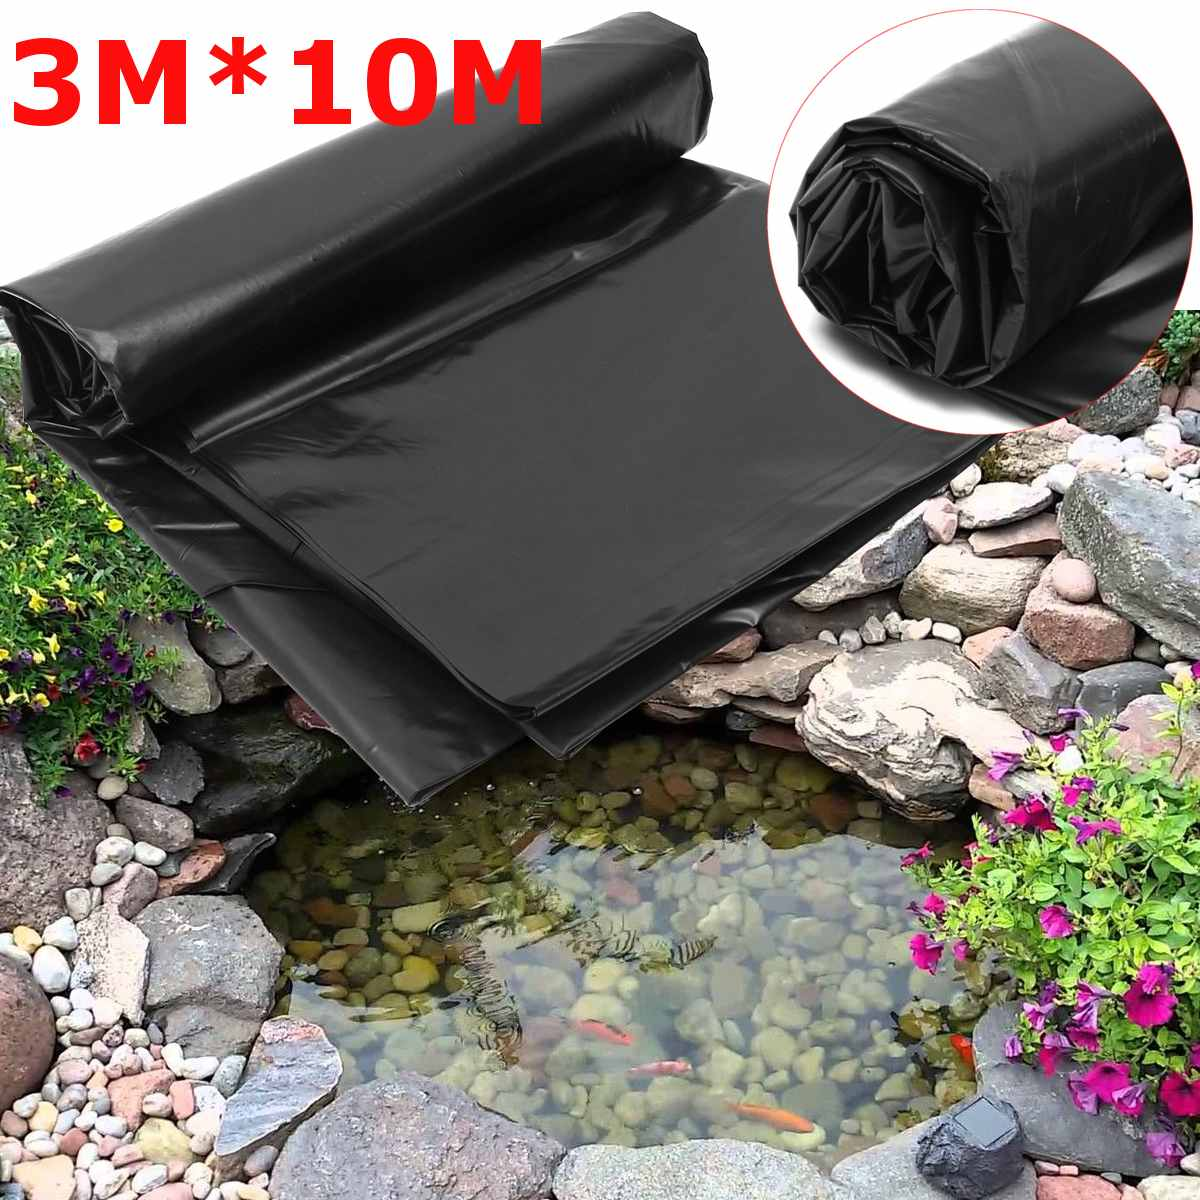 3x10M PE Fish Pond Liner Home Garden Pool Reinforced HDPE Heavy   Landscaping Pool Pond Waterproof Liner Cloth Black New